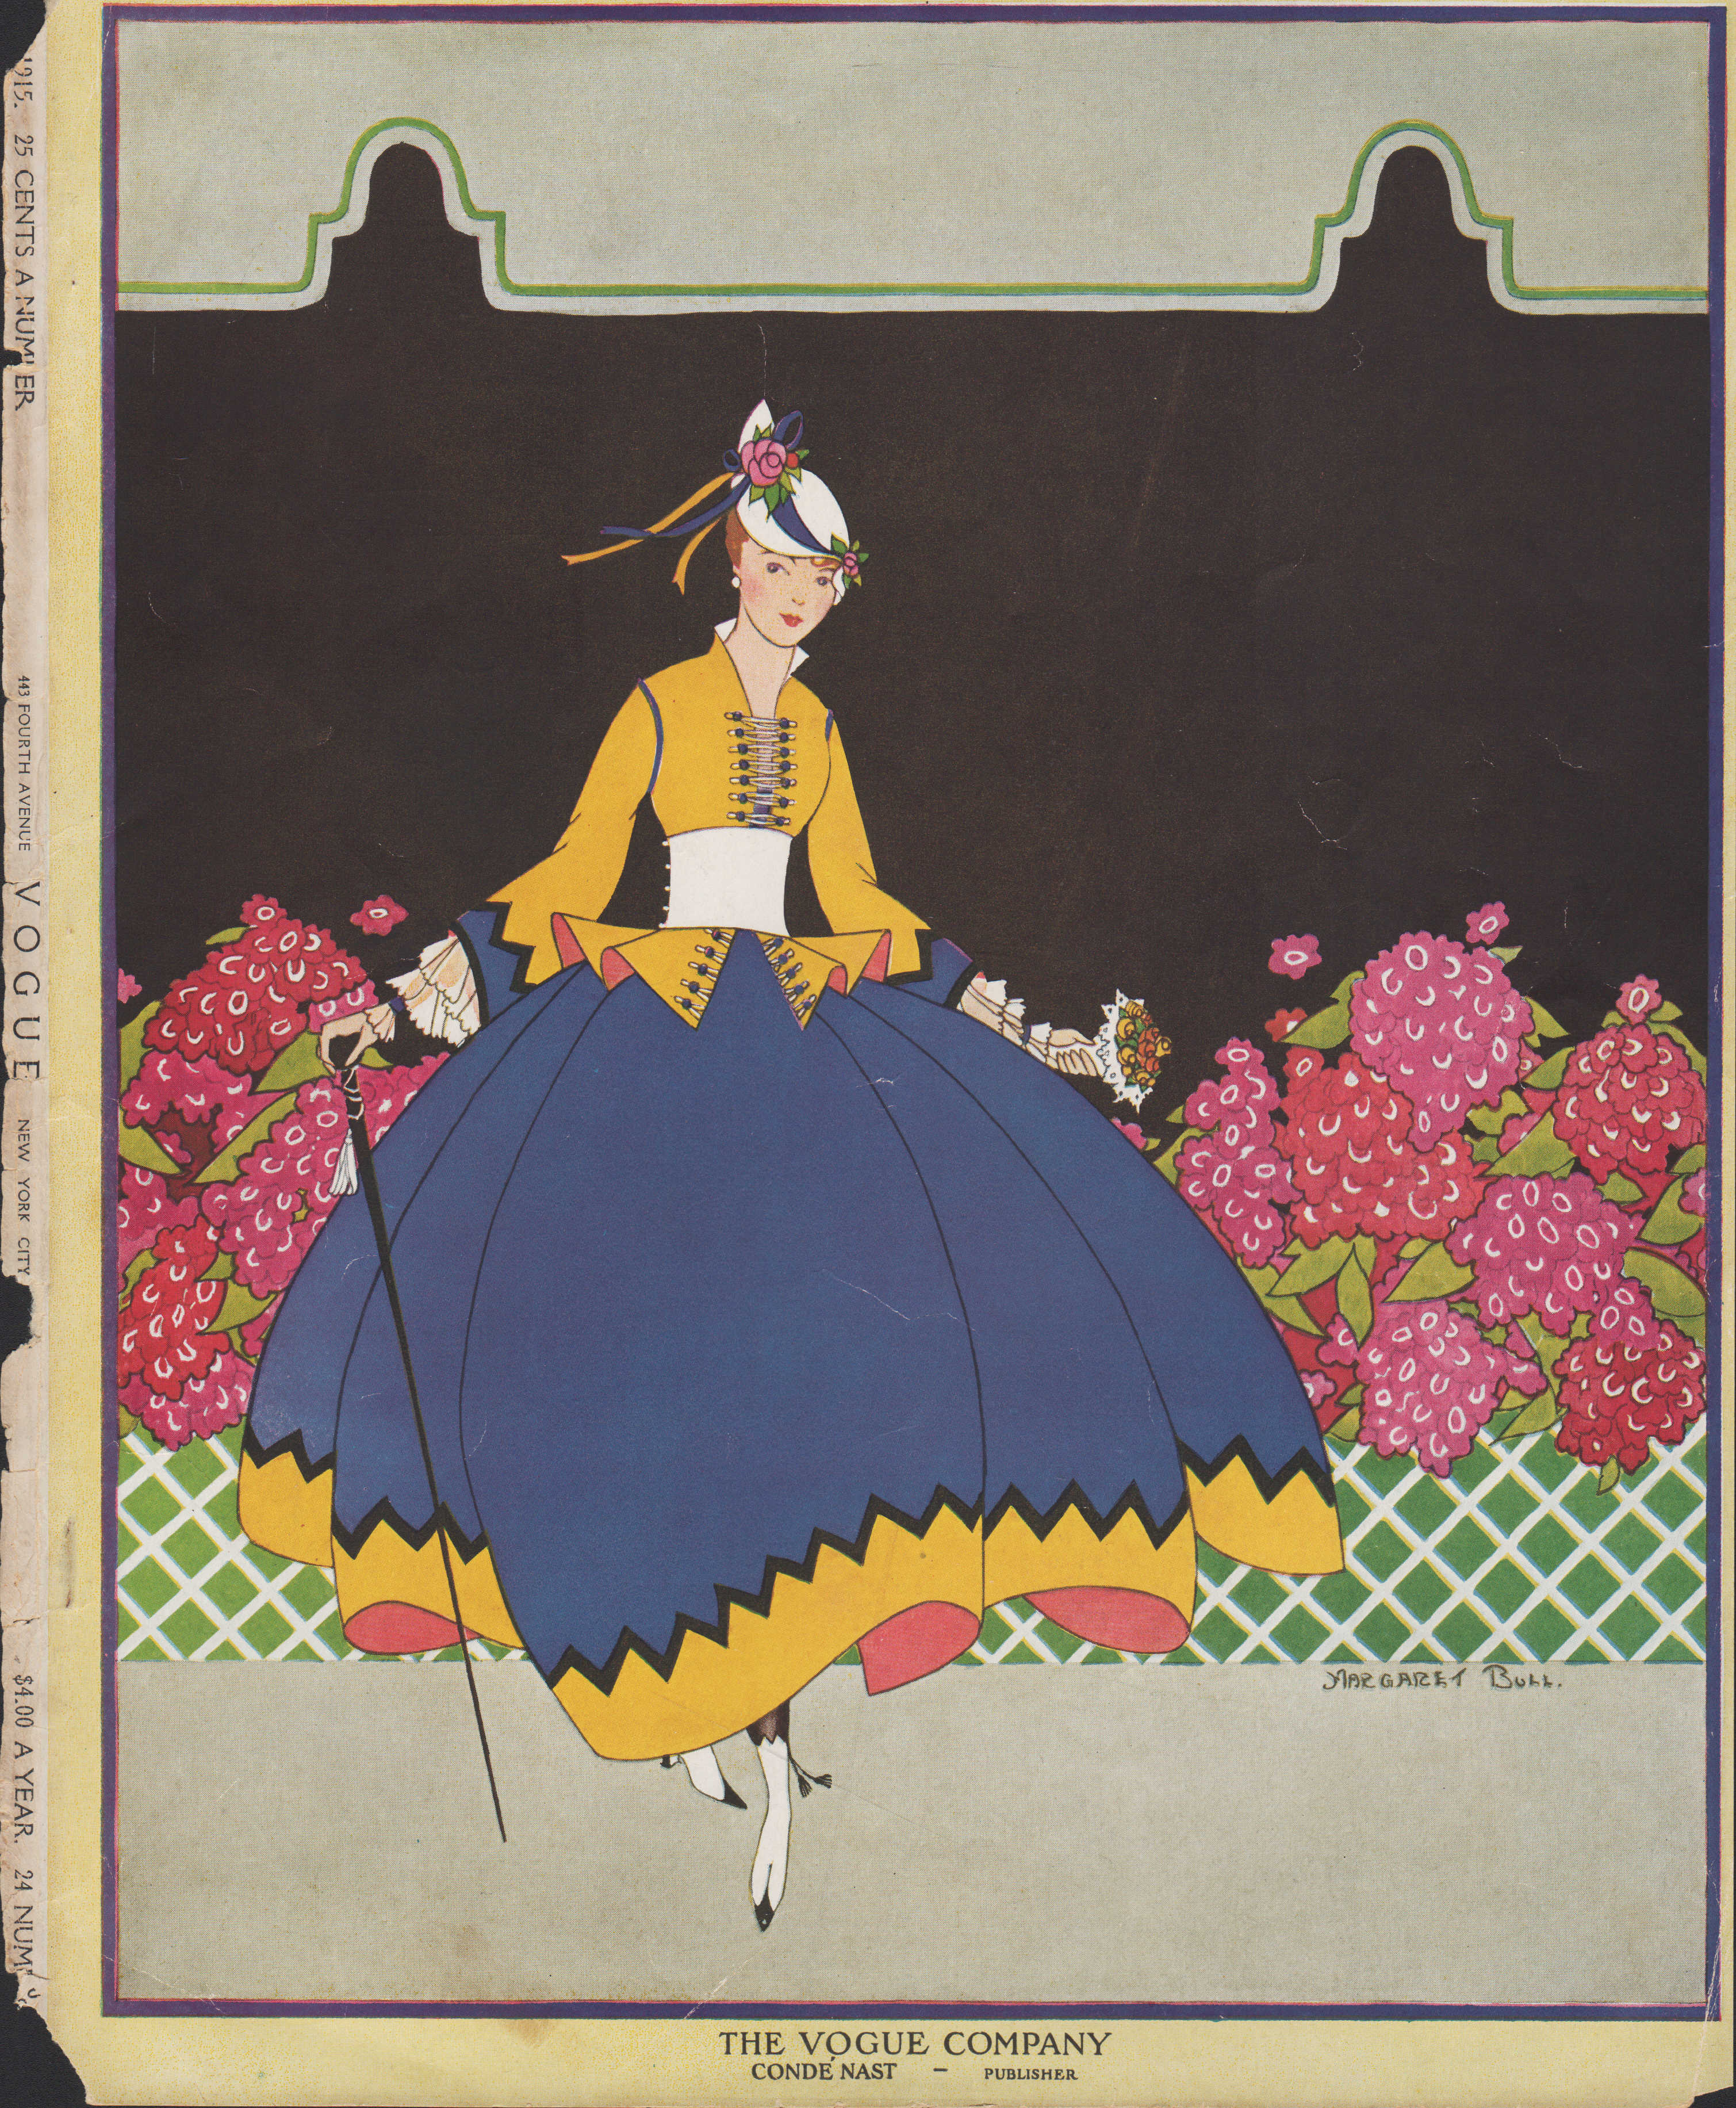 Image for Vogue Magazine, July 15, 1915 - Cover Only. Sans text.